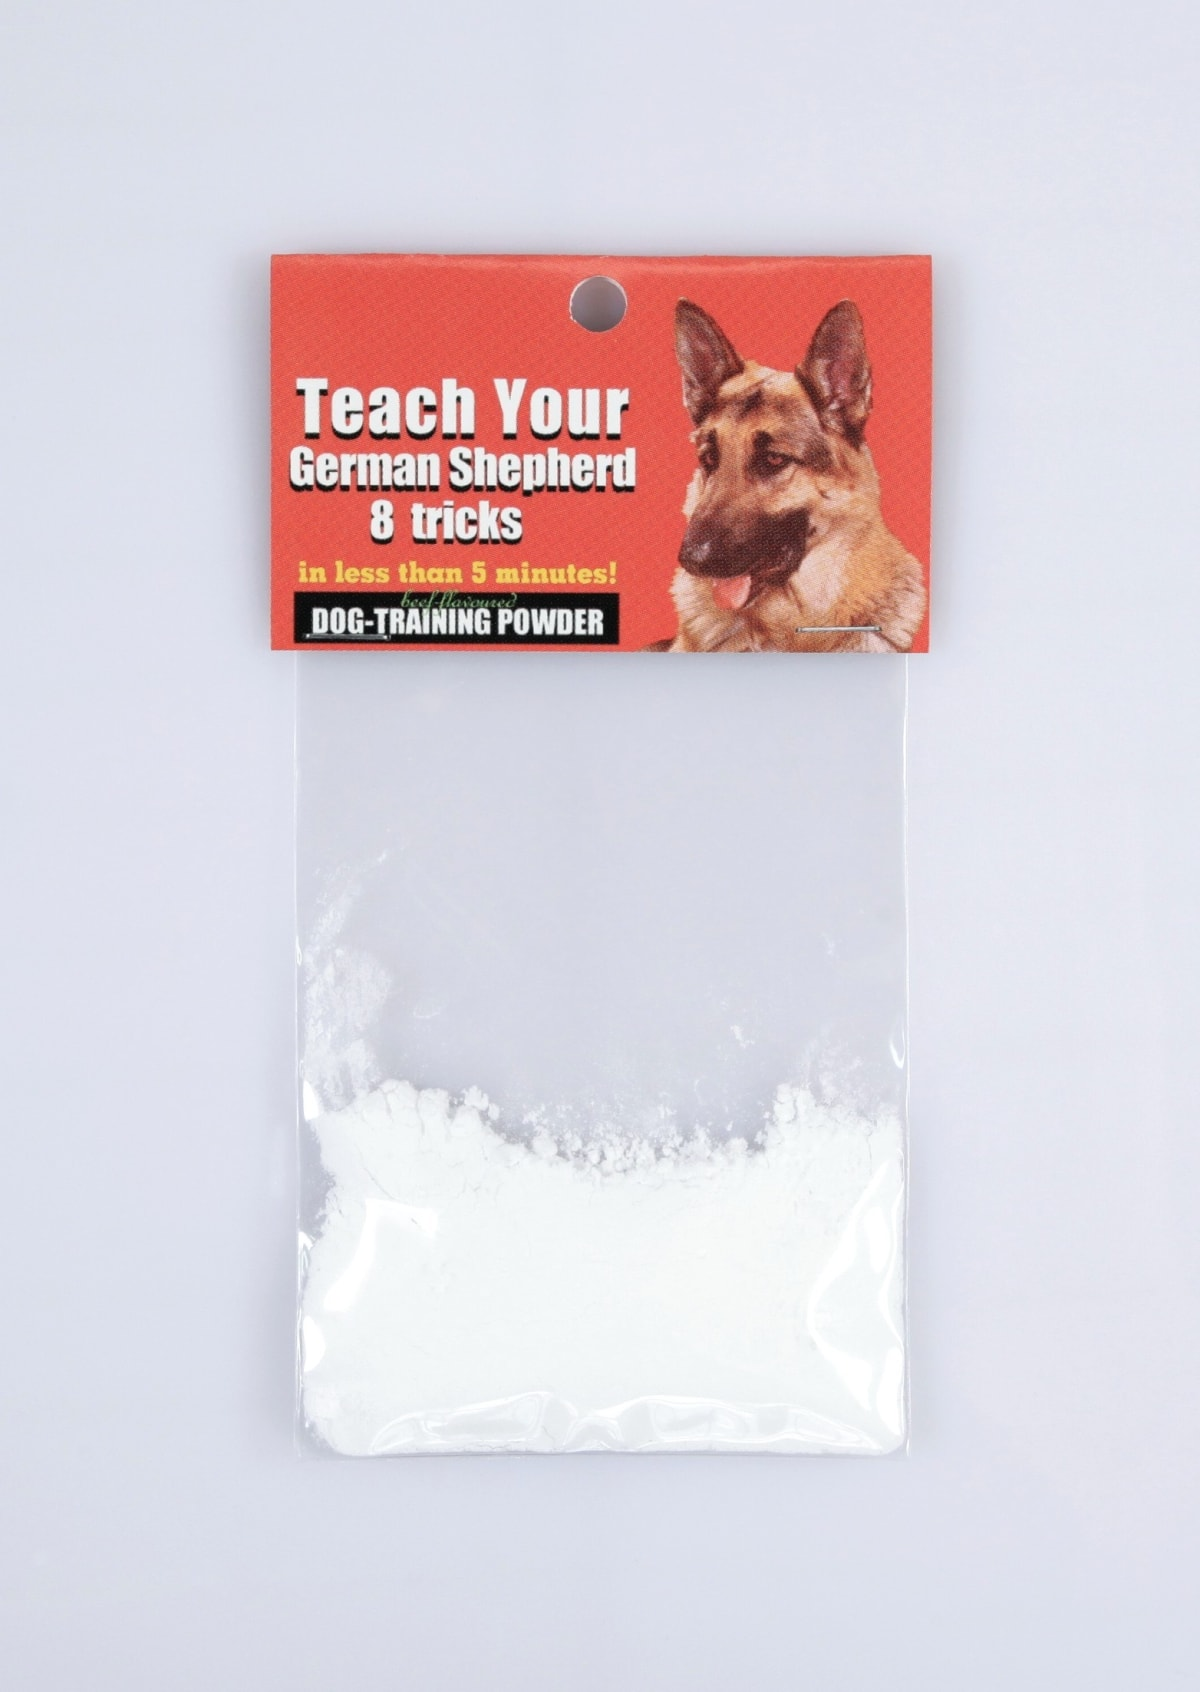 Teach your German Shepherd 8 tricks